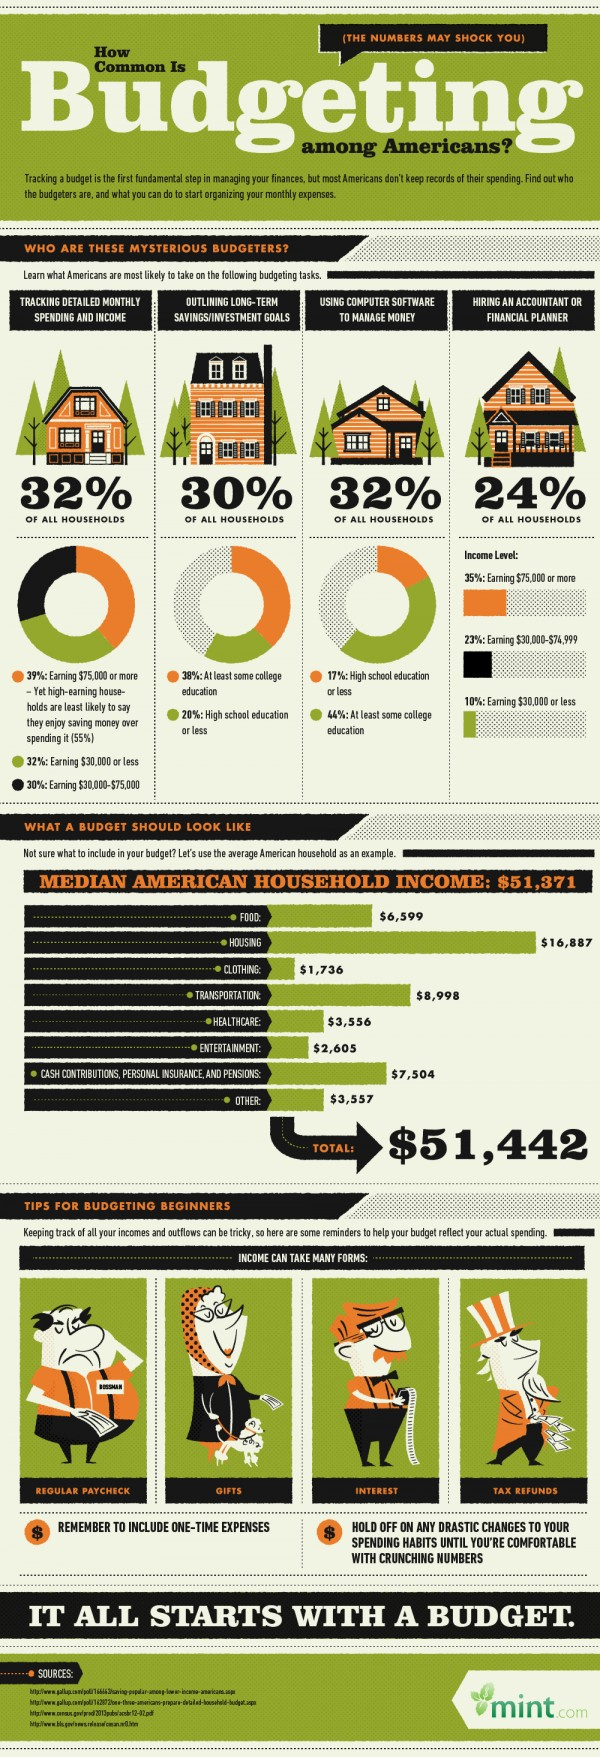 How-Common-is-Budgeting-for-Americans